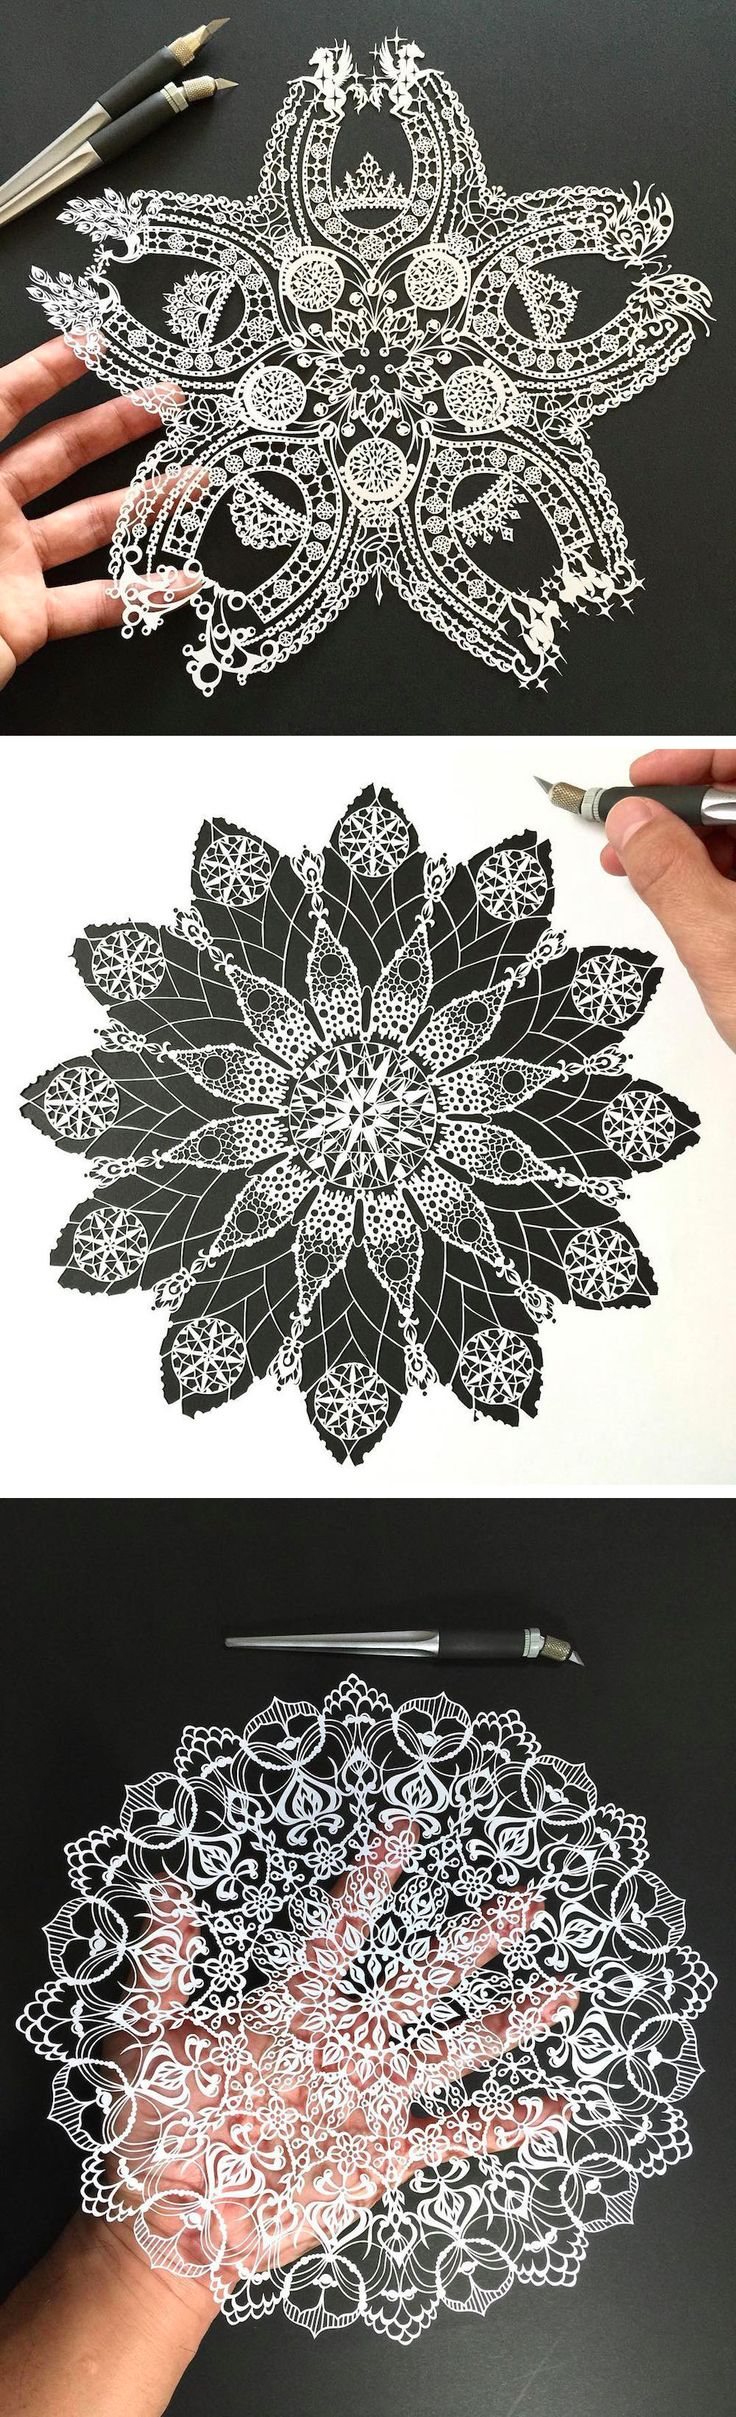 Hand-Cut Mandalas and Other Intricate Paper Works by Mr. Riu